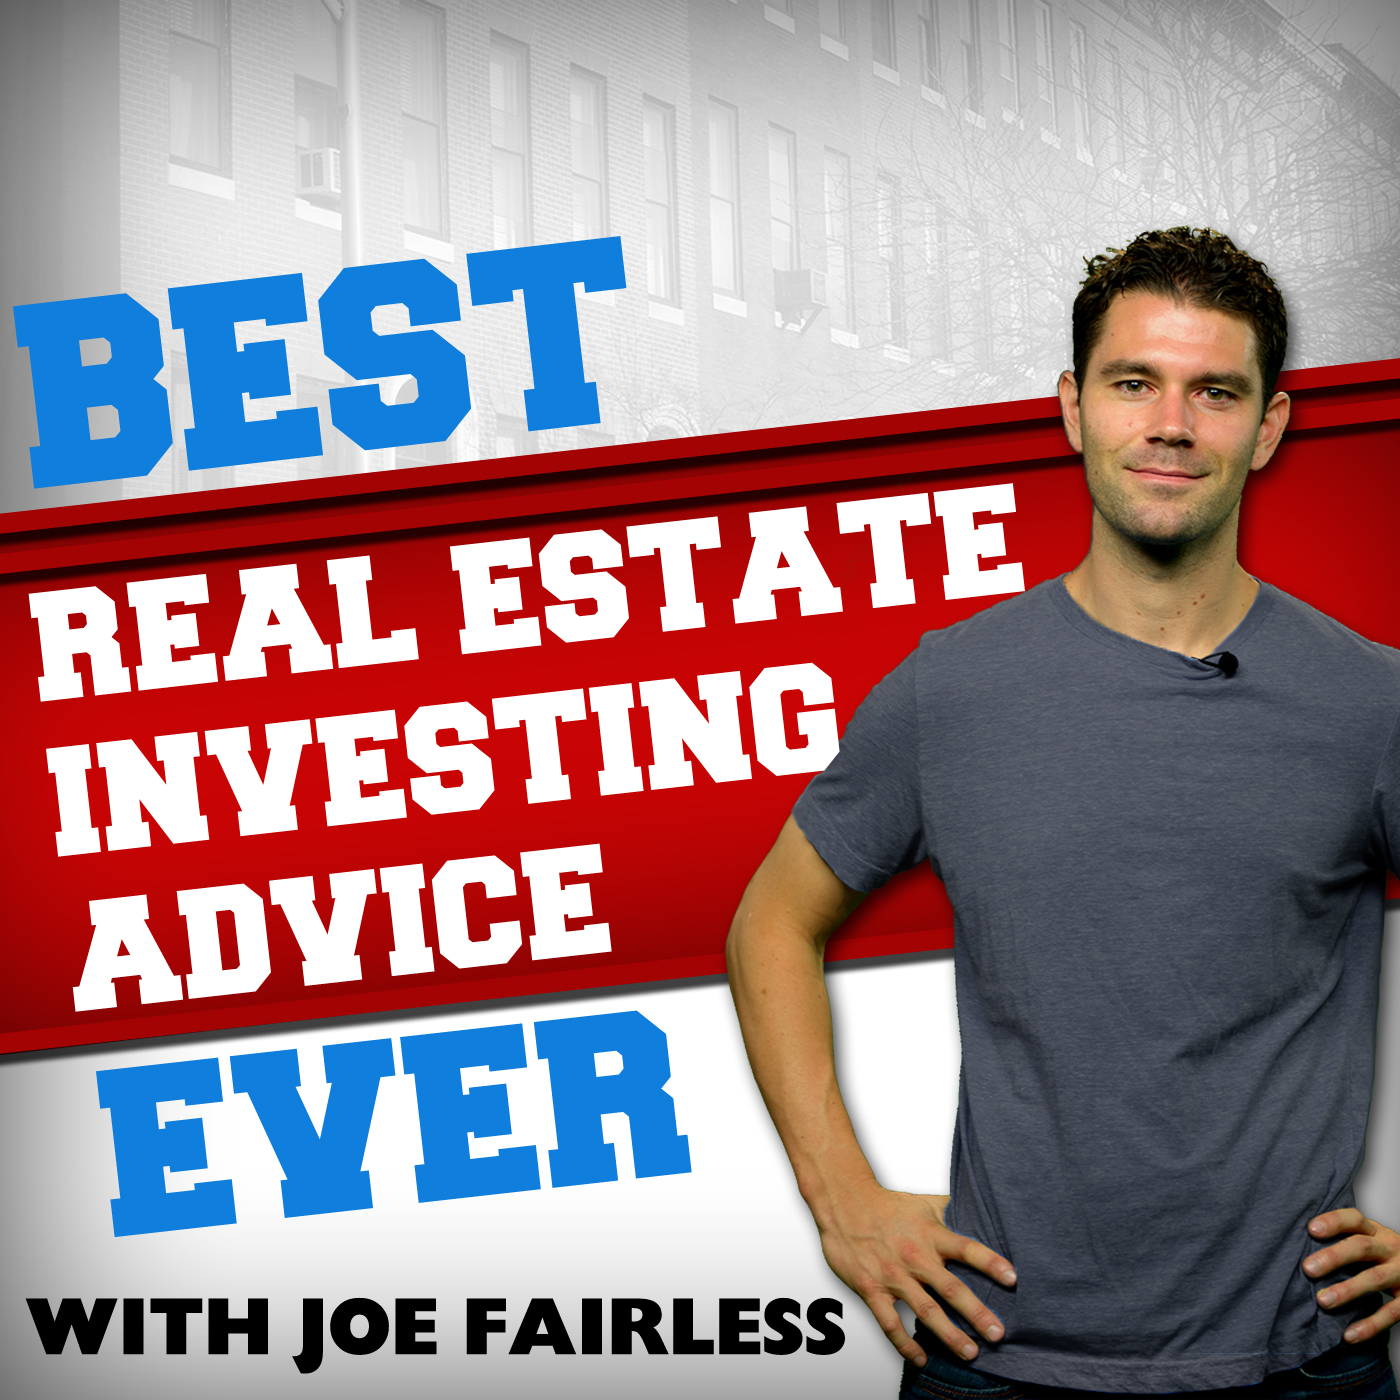 JF468: Best Online Lending Series Ever: Part 2 of 2